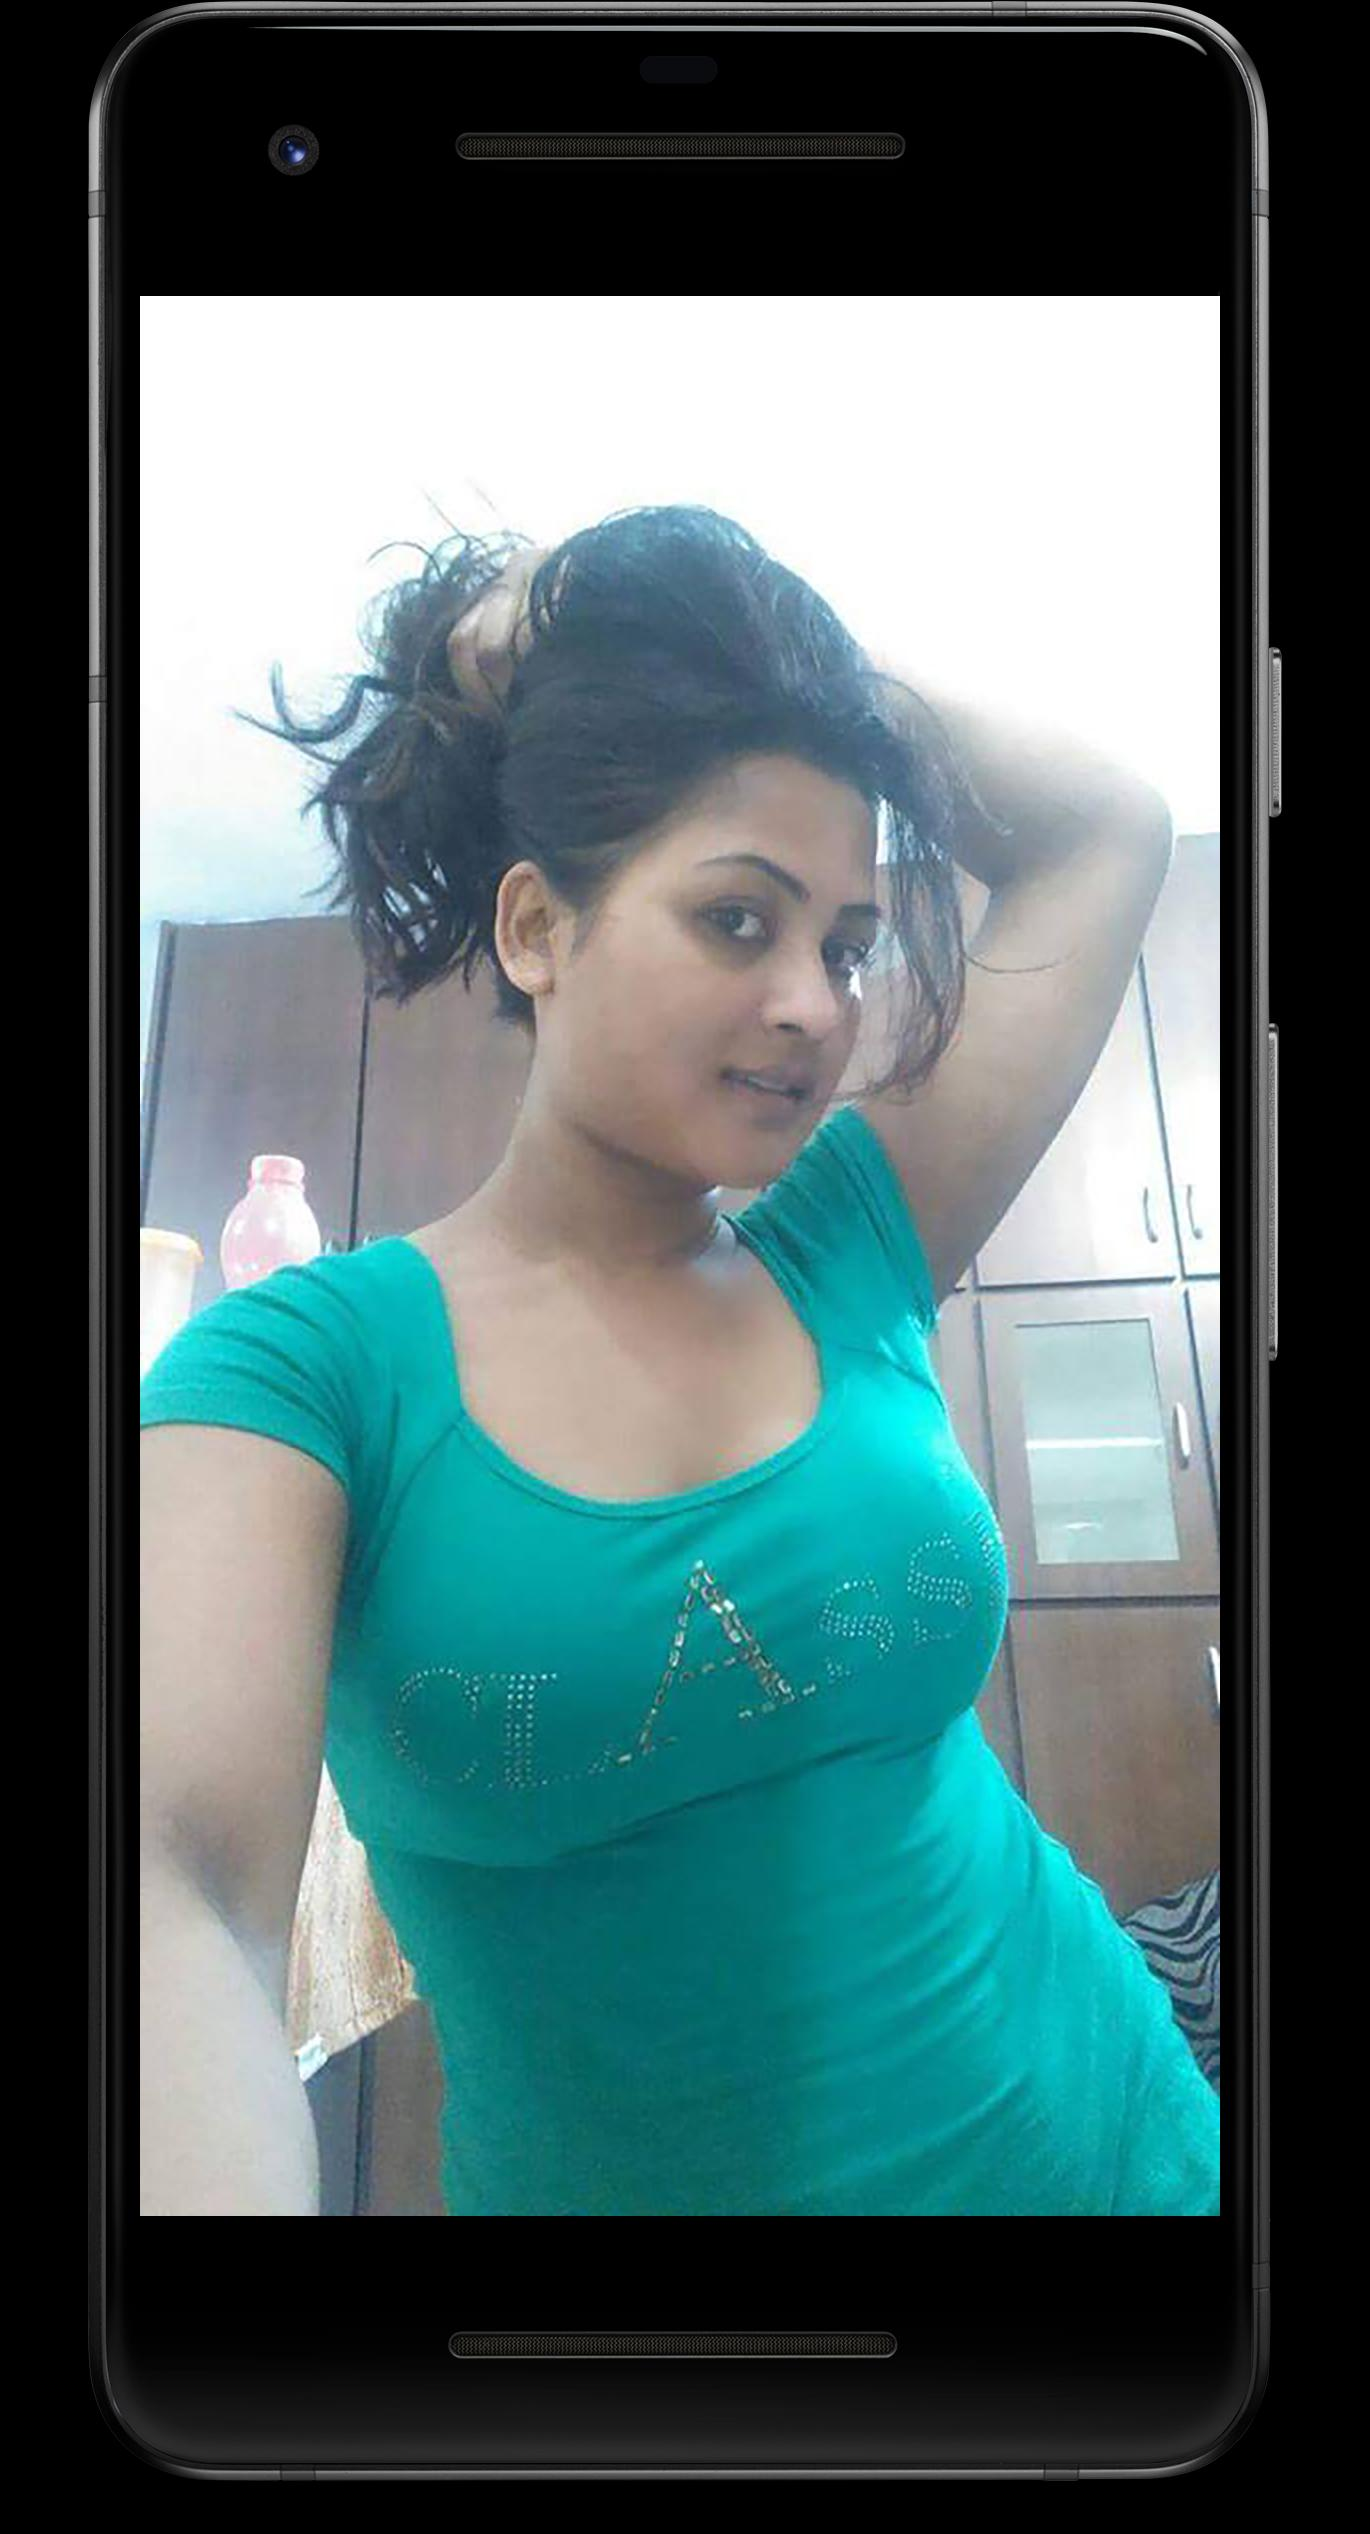 Hot Desi Girls Private Viral Pics Wallpaper For Android - Apk Download-6163